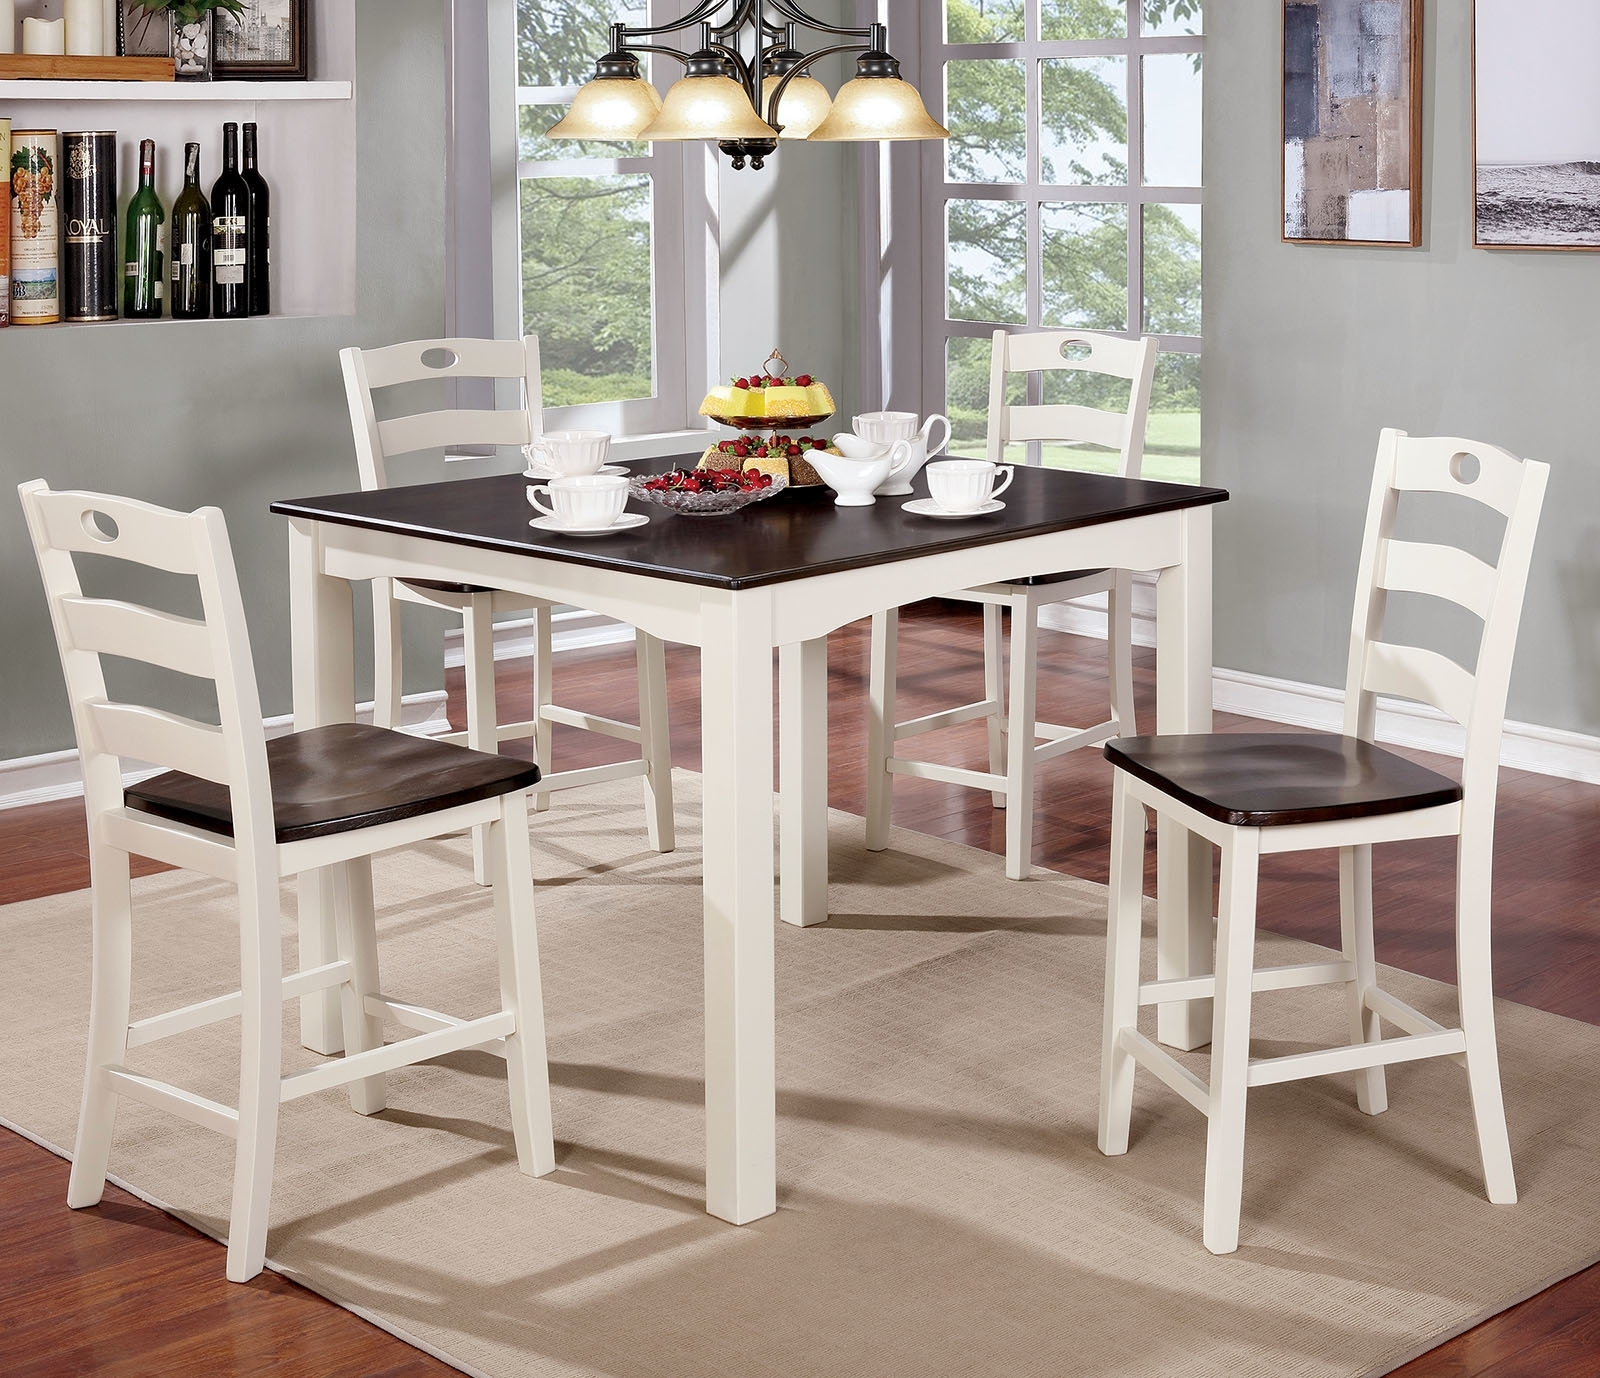 Red Barrel Studio Harkins Wooden 5 Piece Counter Height Dining Table With Most Popular Candice Ii 5 Piece Round Dining Sets (Image 13 of 20)